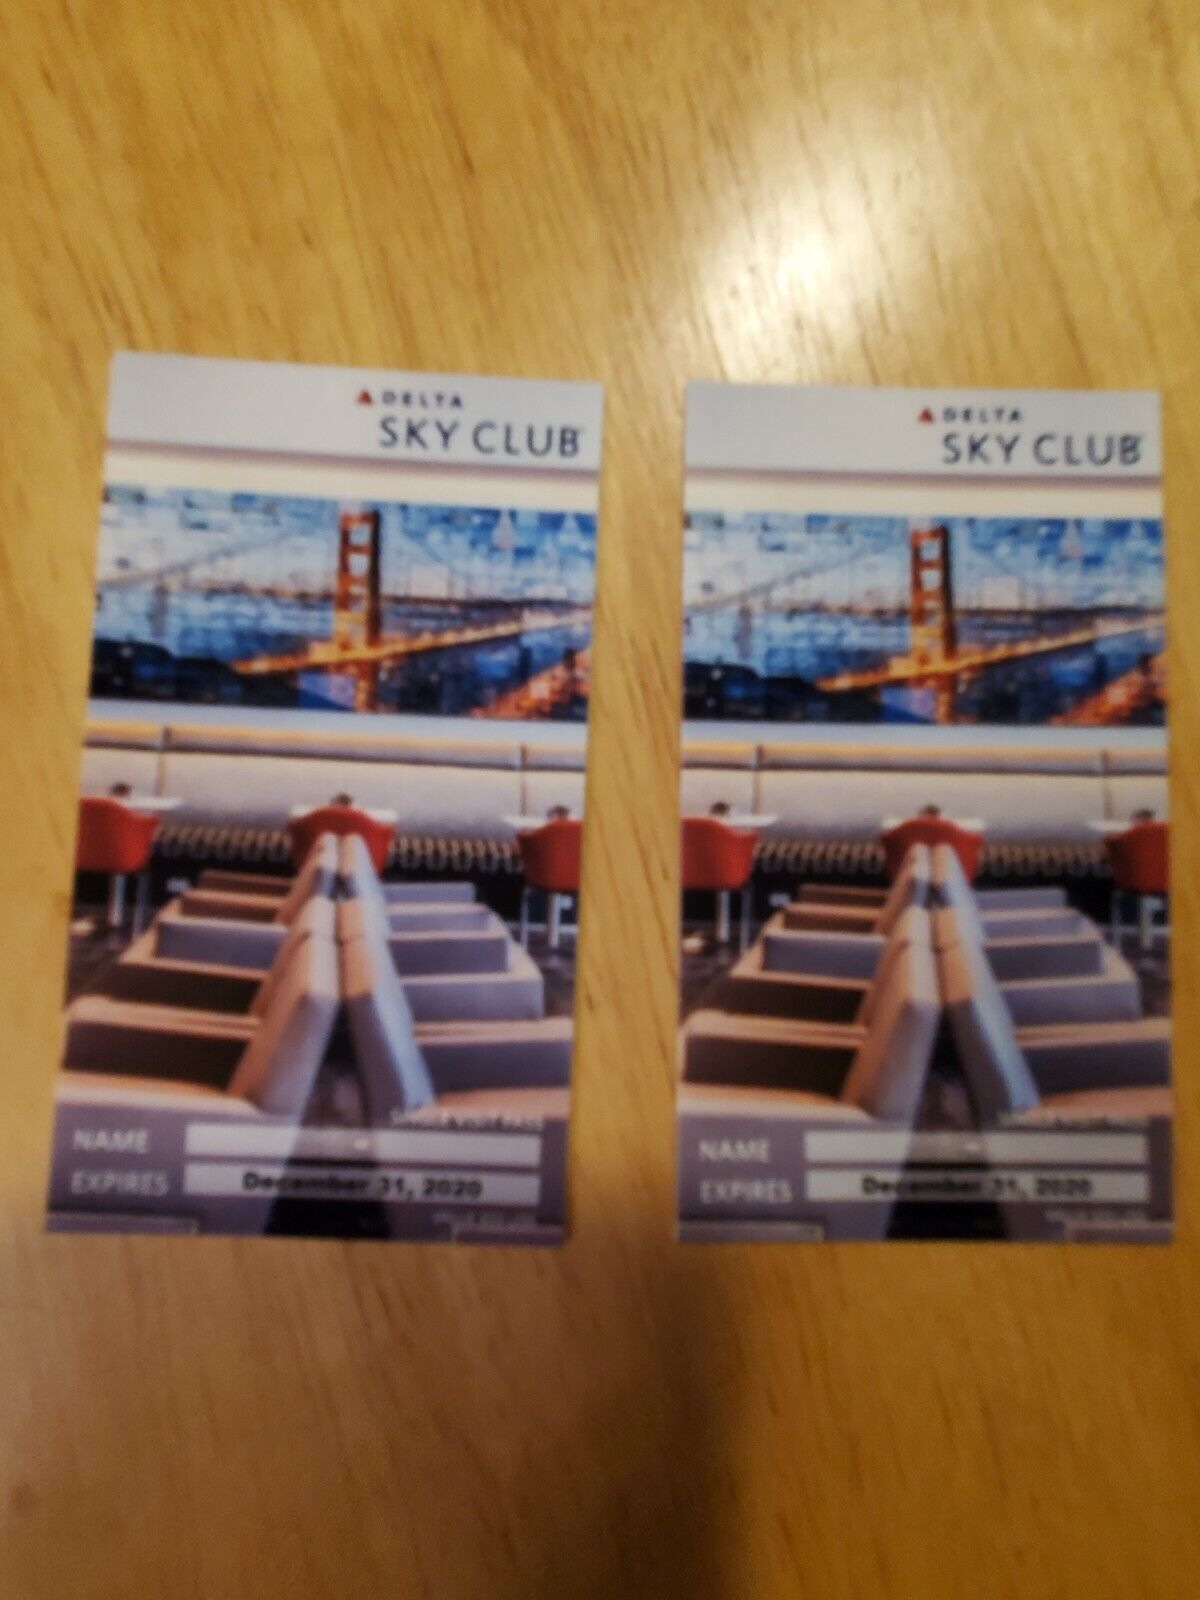 2x Delta Sky Club Pass - Expiration 12/31/20 - $57.99